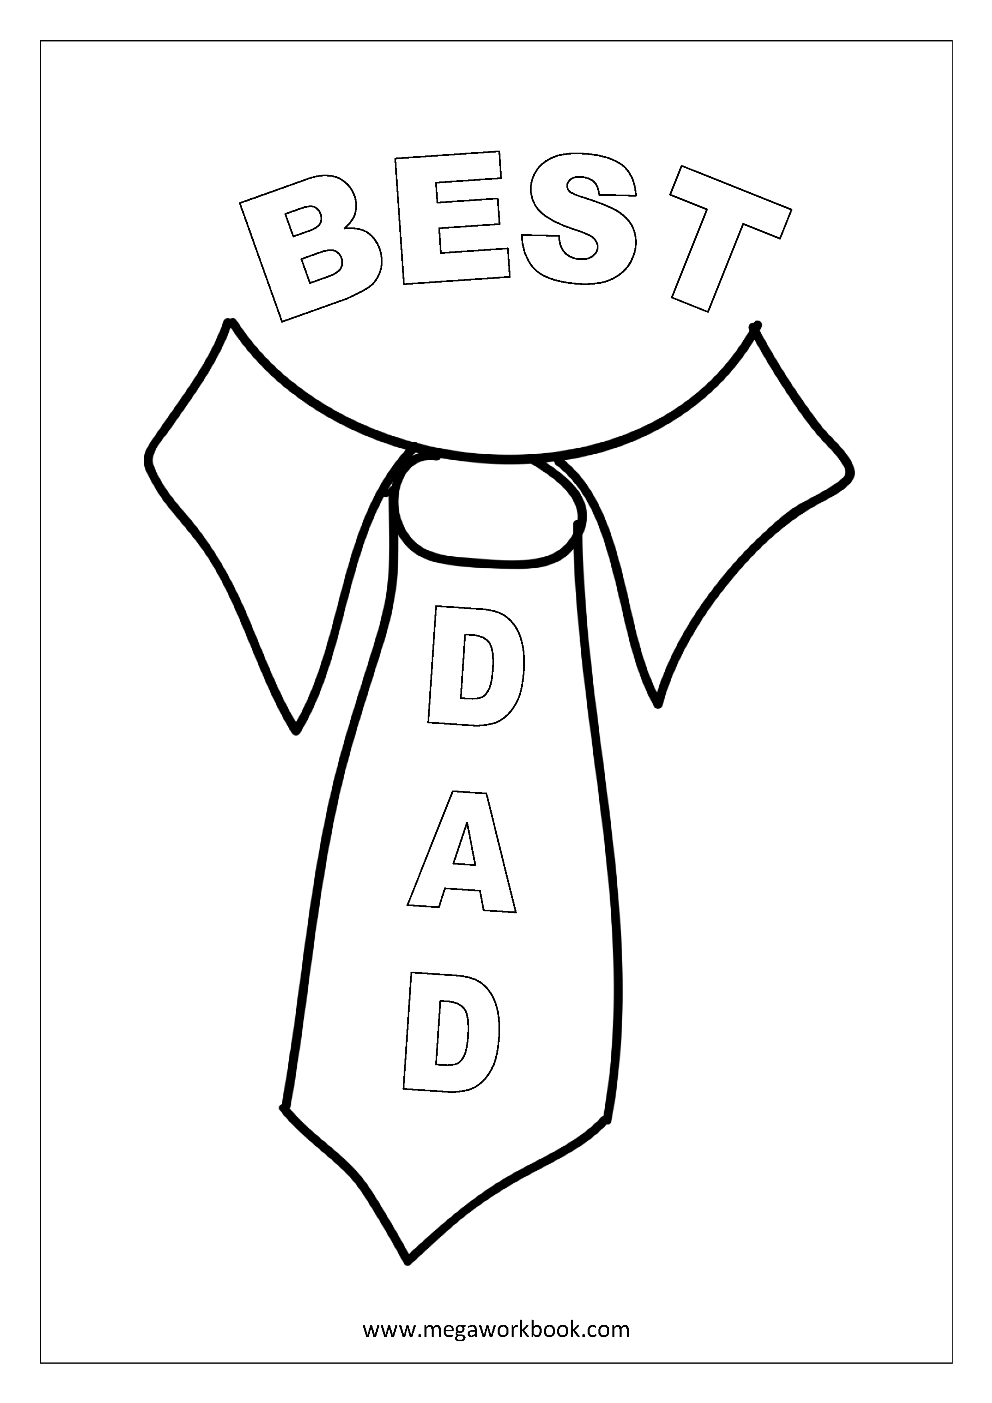 Free Coloring Sheets Fathers Day MegaWorkbook